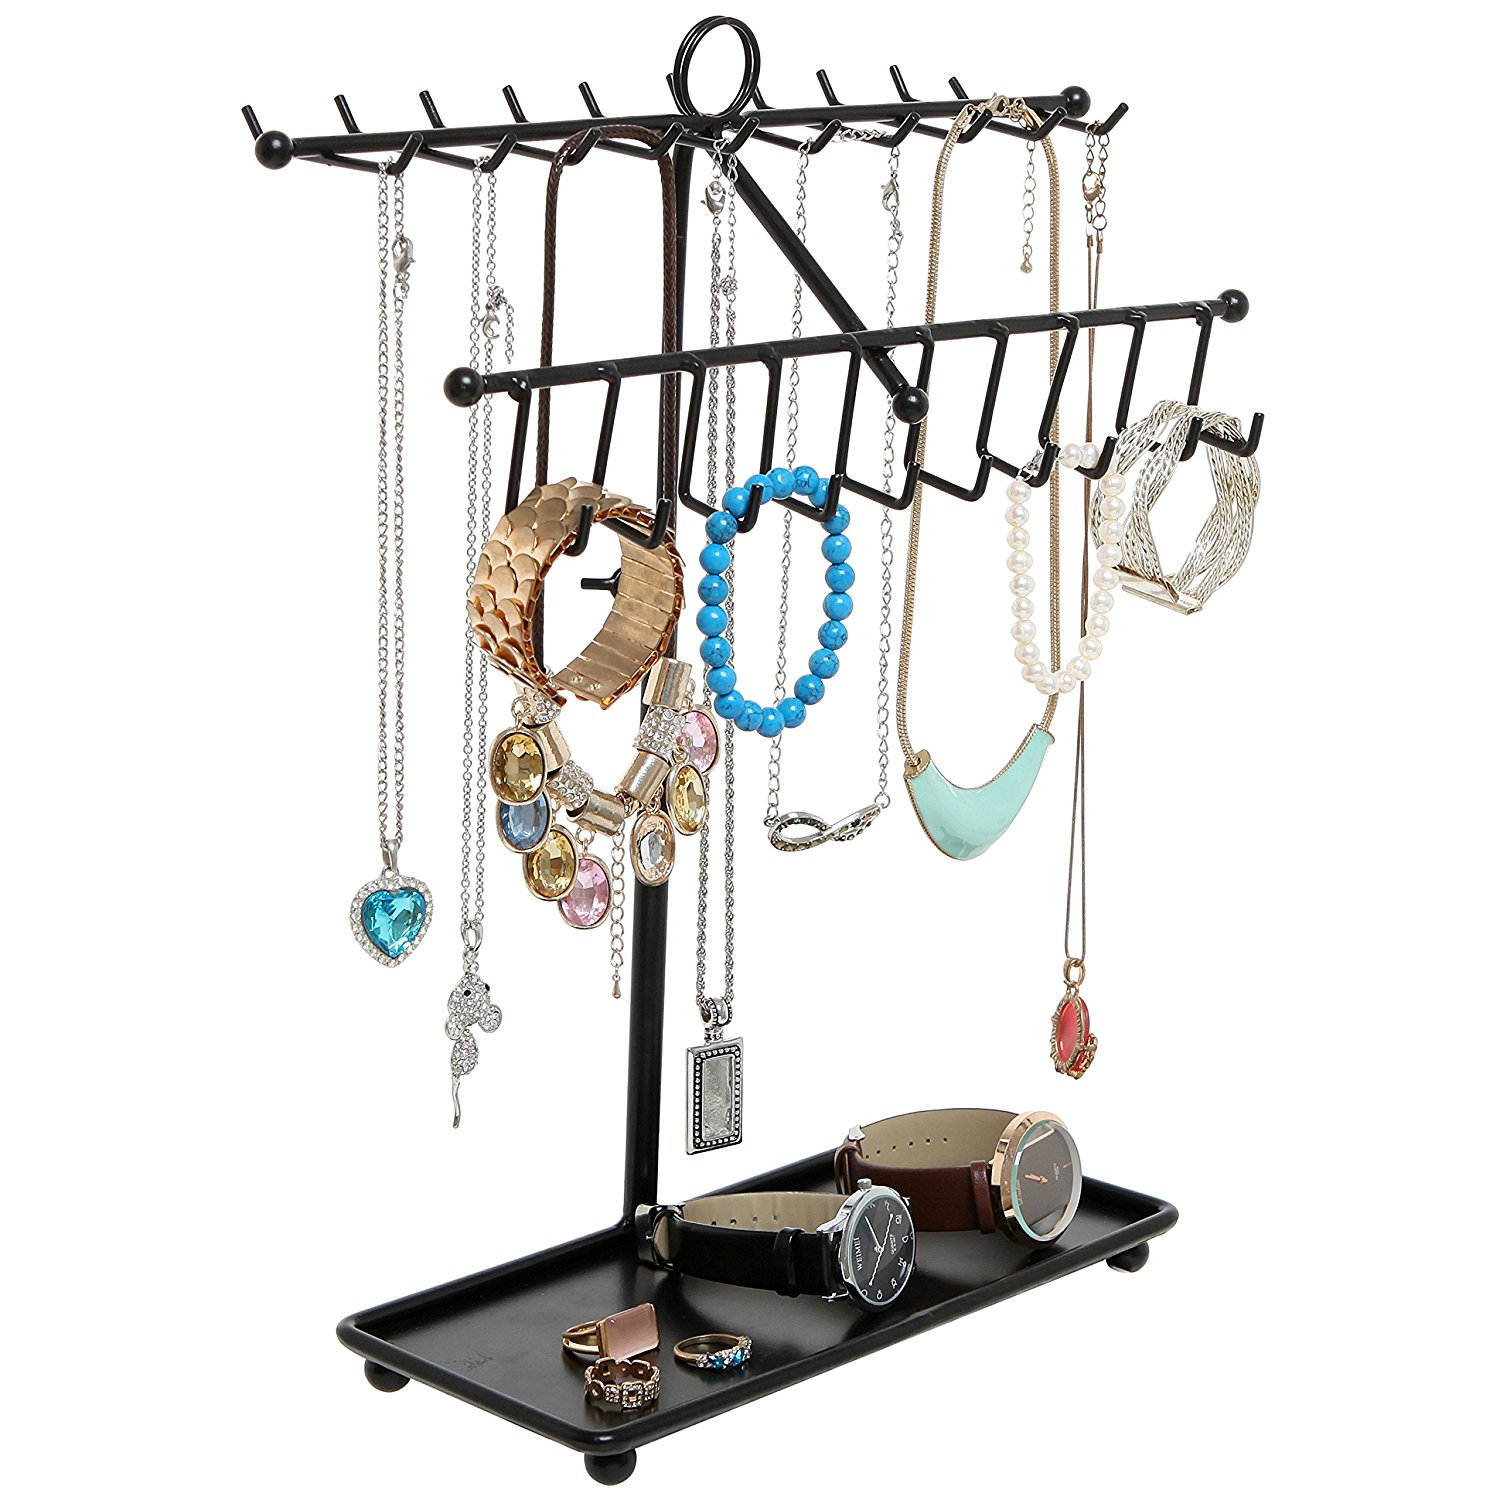 MyGift Black Metal Adjustable Height Jewelry / Necklace / Bracelet Hanger w/ Ring Tray Retail Display